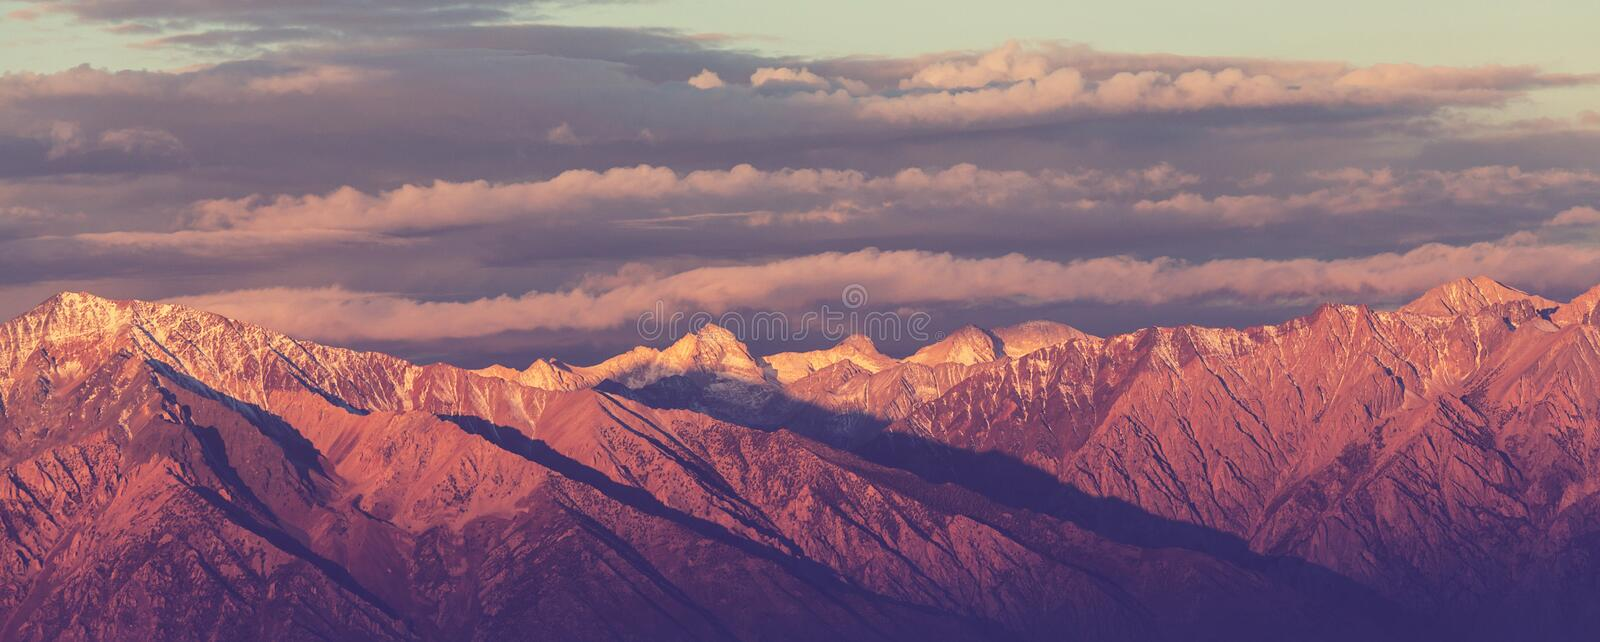 Sierra Nevada. Mountains royalty free stock images